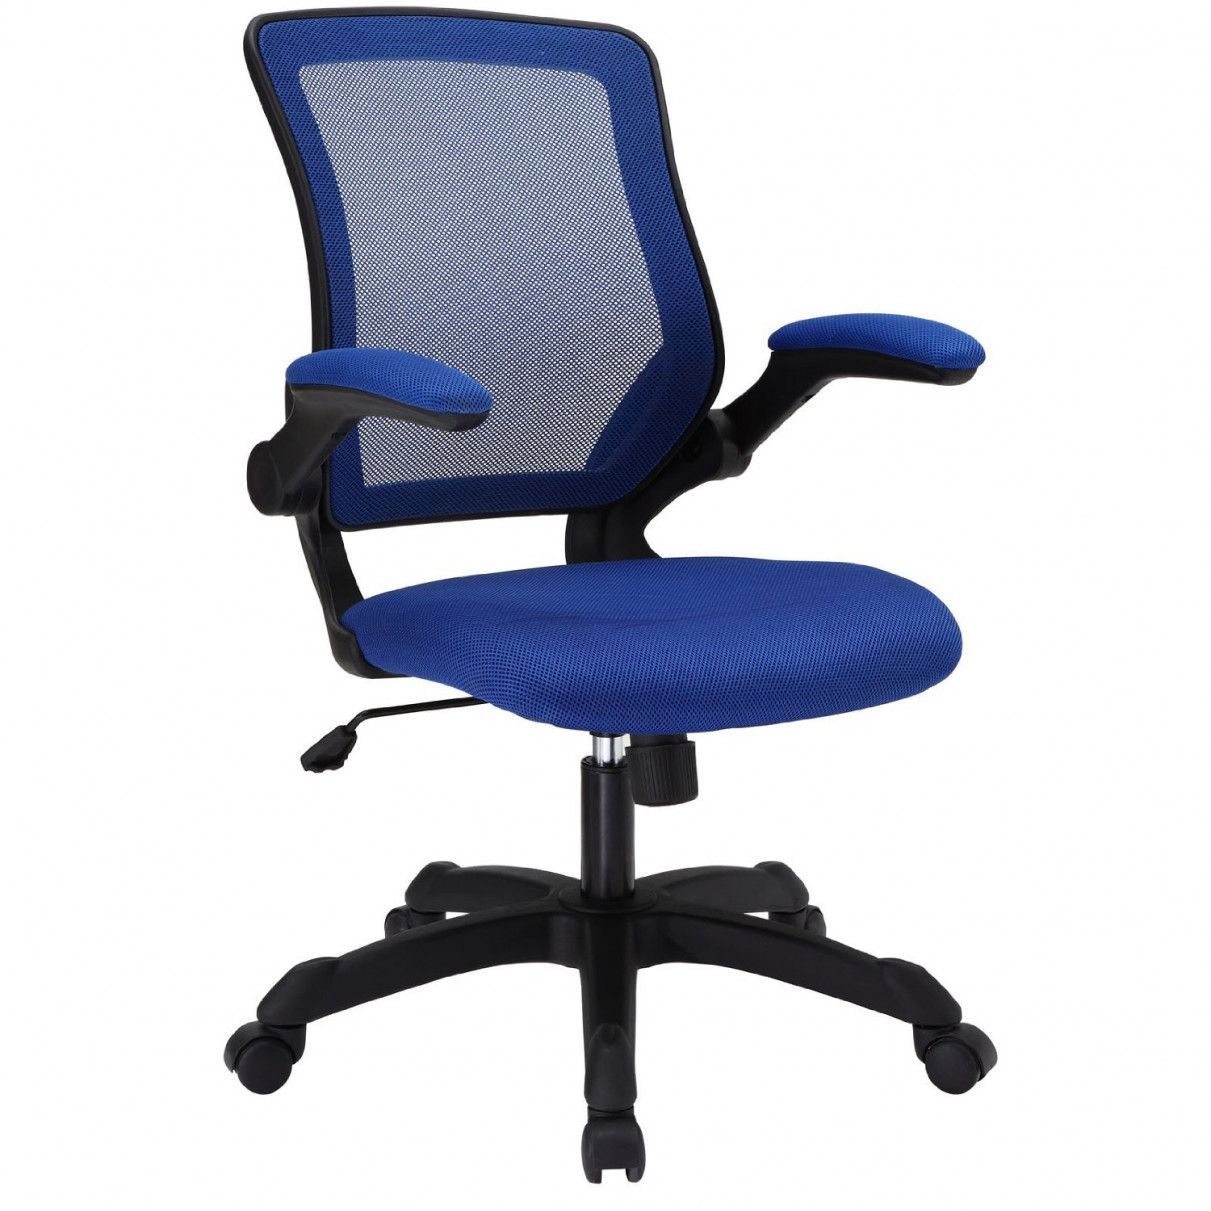 Beau Cheap Kids Desk Chair   Real Wood Home Office Furniture Check More At Http:/